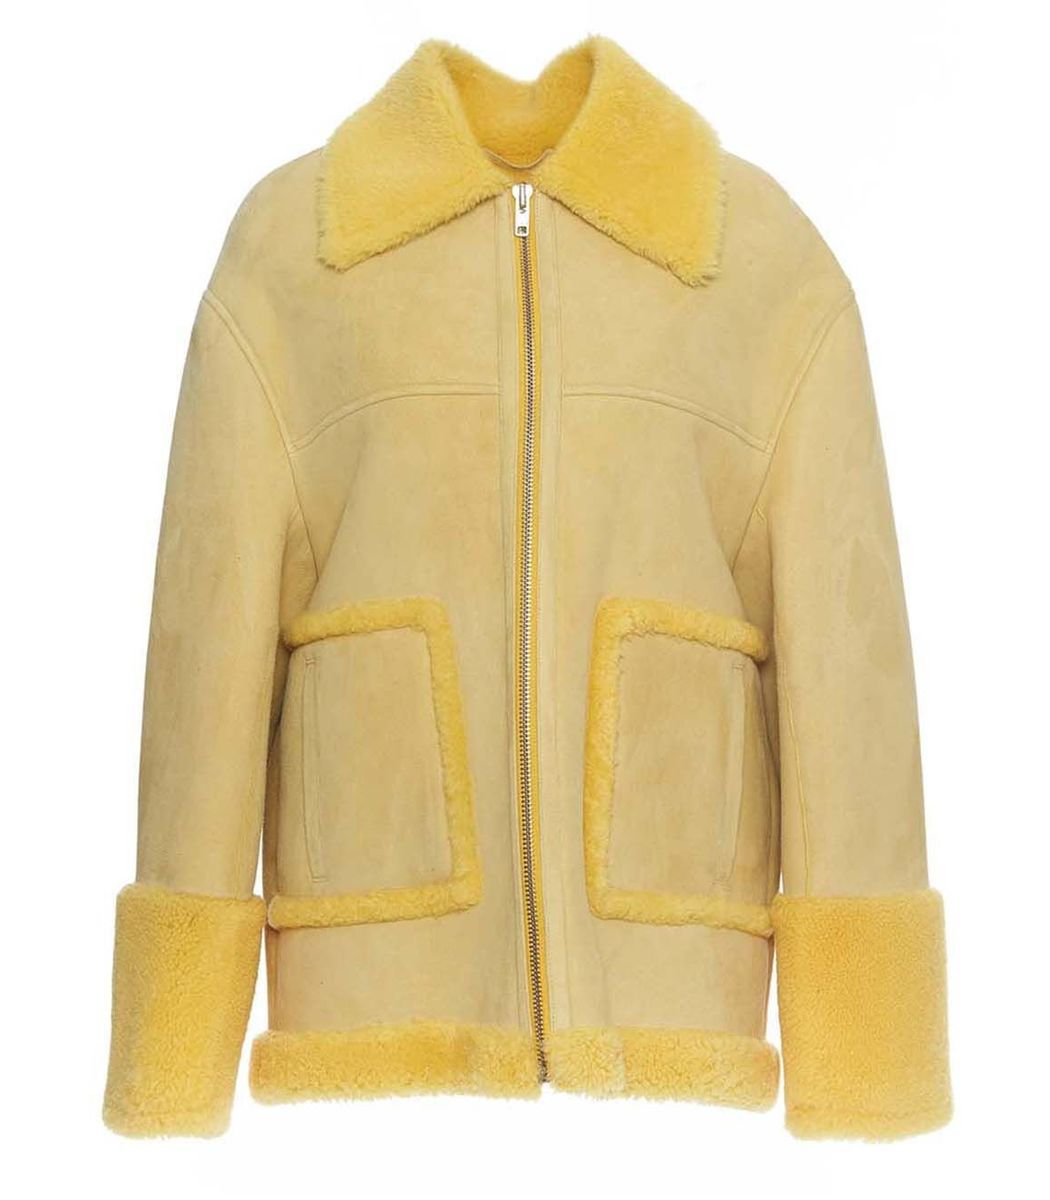 ANNE VEST Oversized Suede Shearling Jacket in Yellow